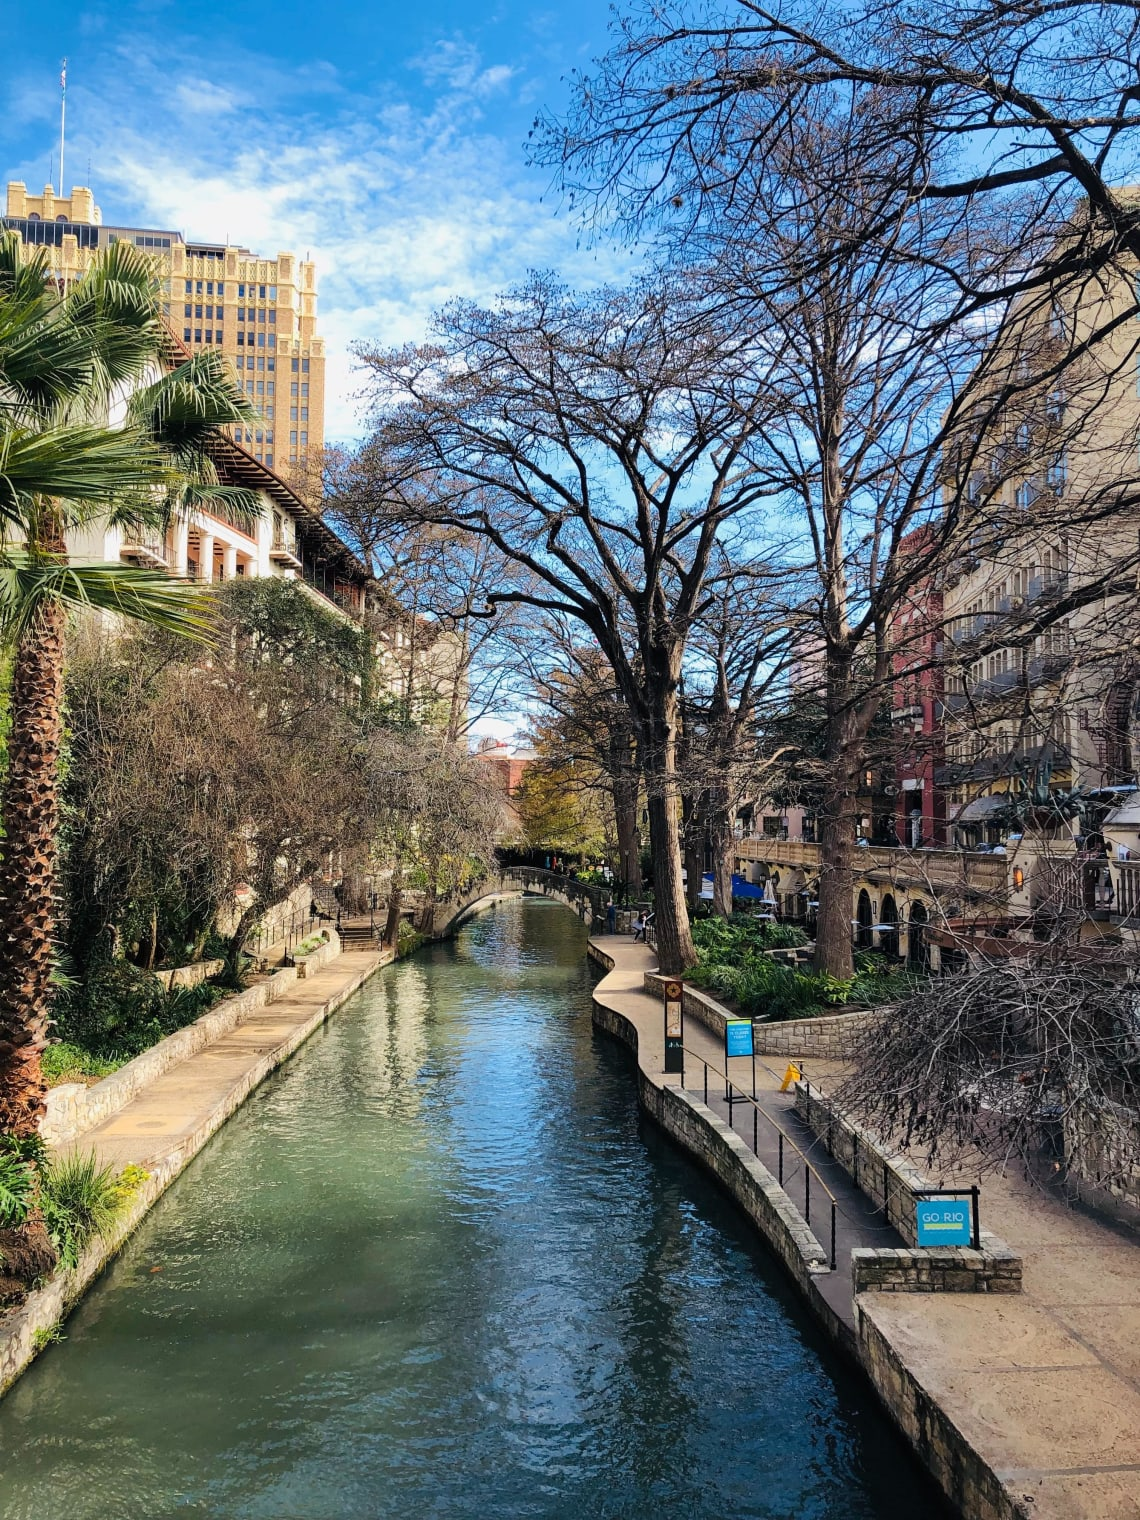 Best offbeat places to visit in the USA: San Antonio, TX